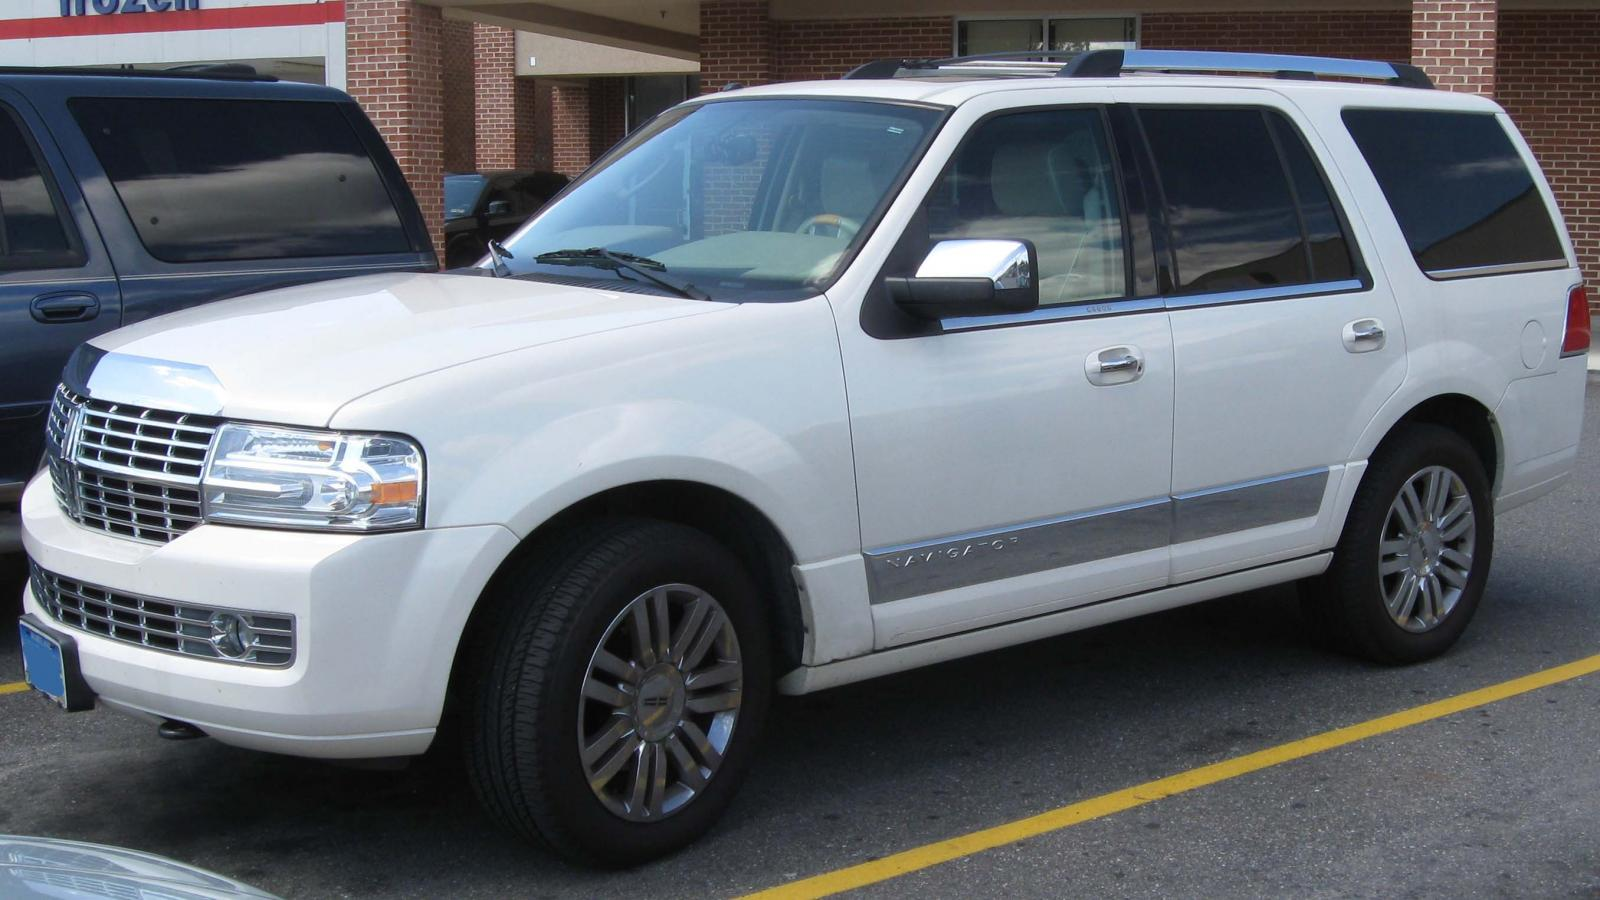 2000 Lincoln Navigator Information And Photos Zomb Drive